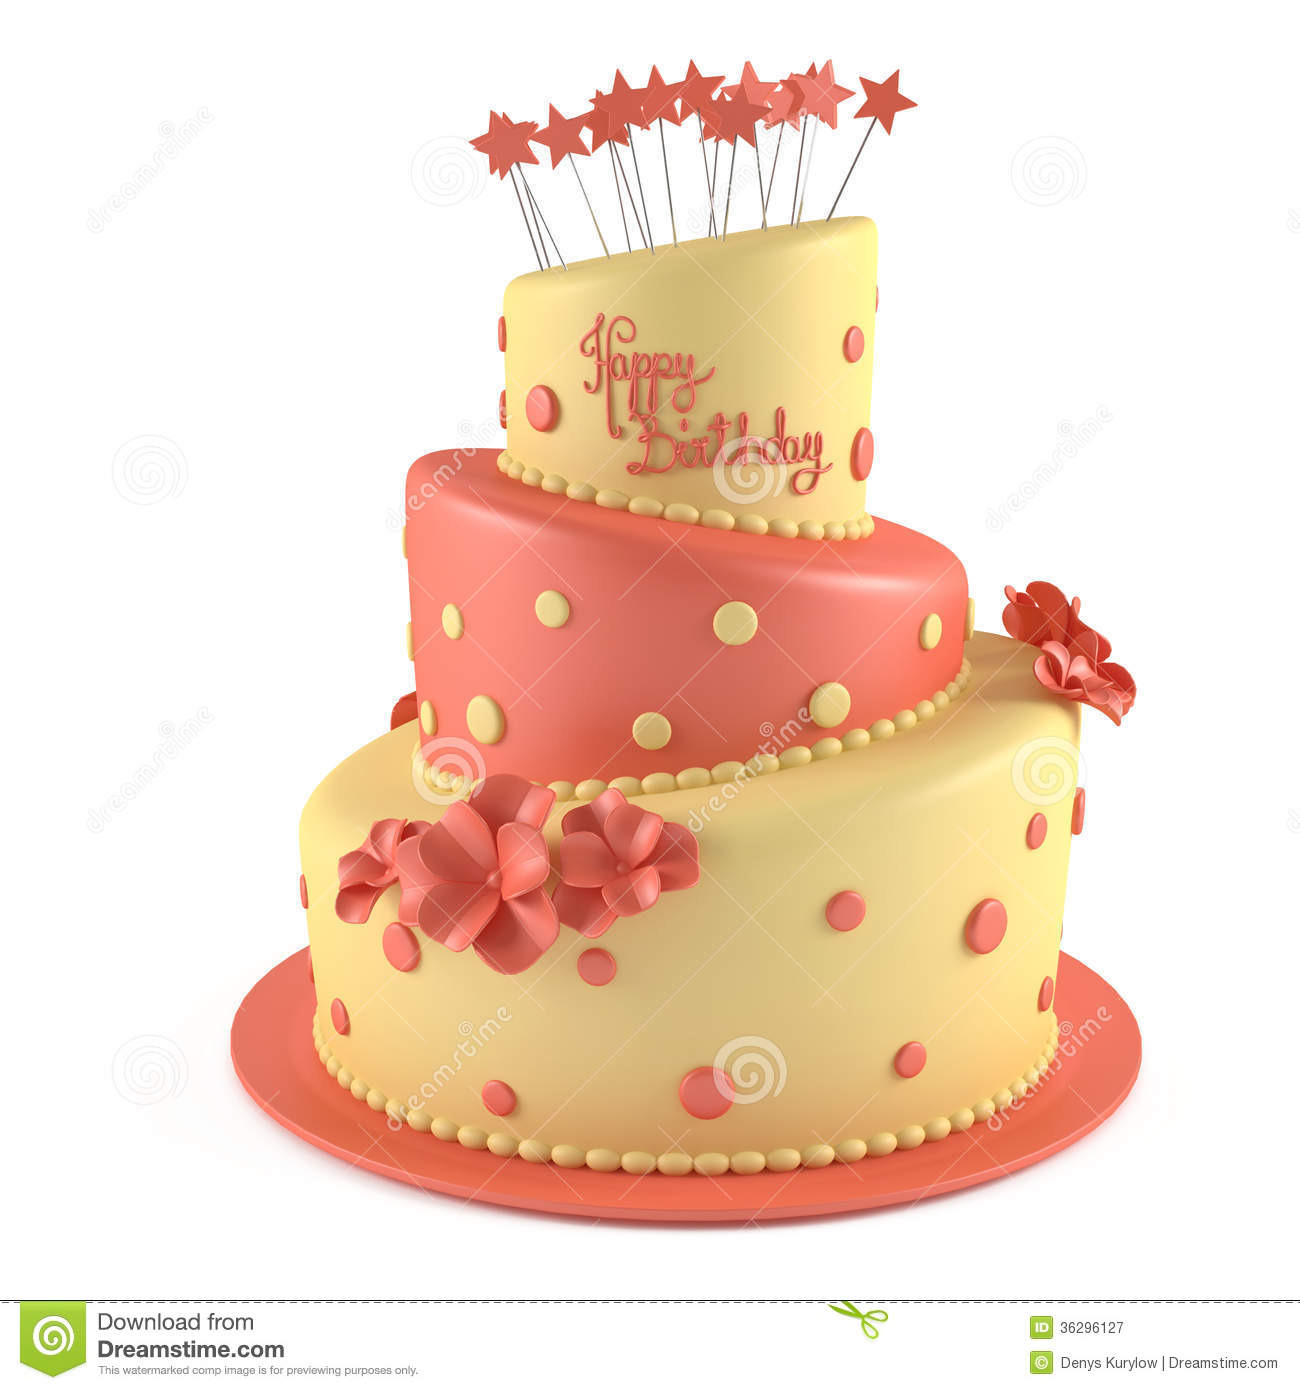 Pin tropical clipart vector 187 free graphics design freebies cake on